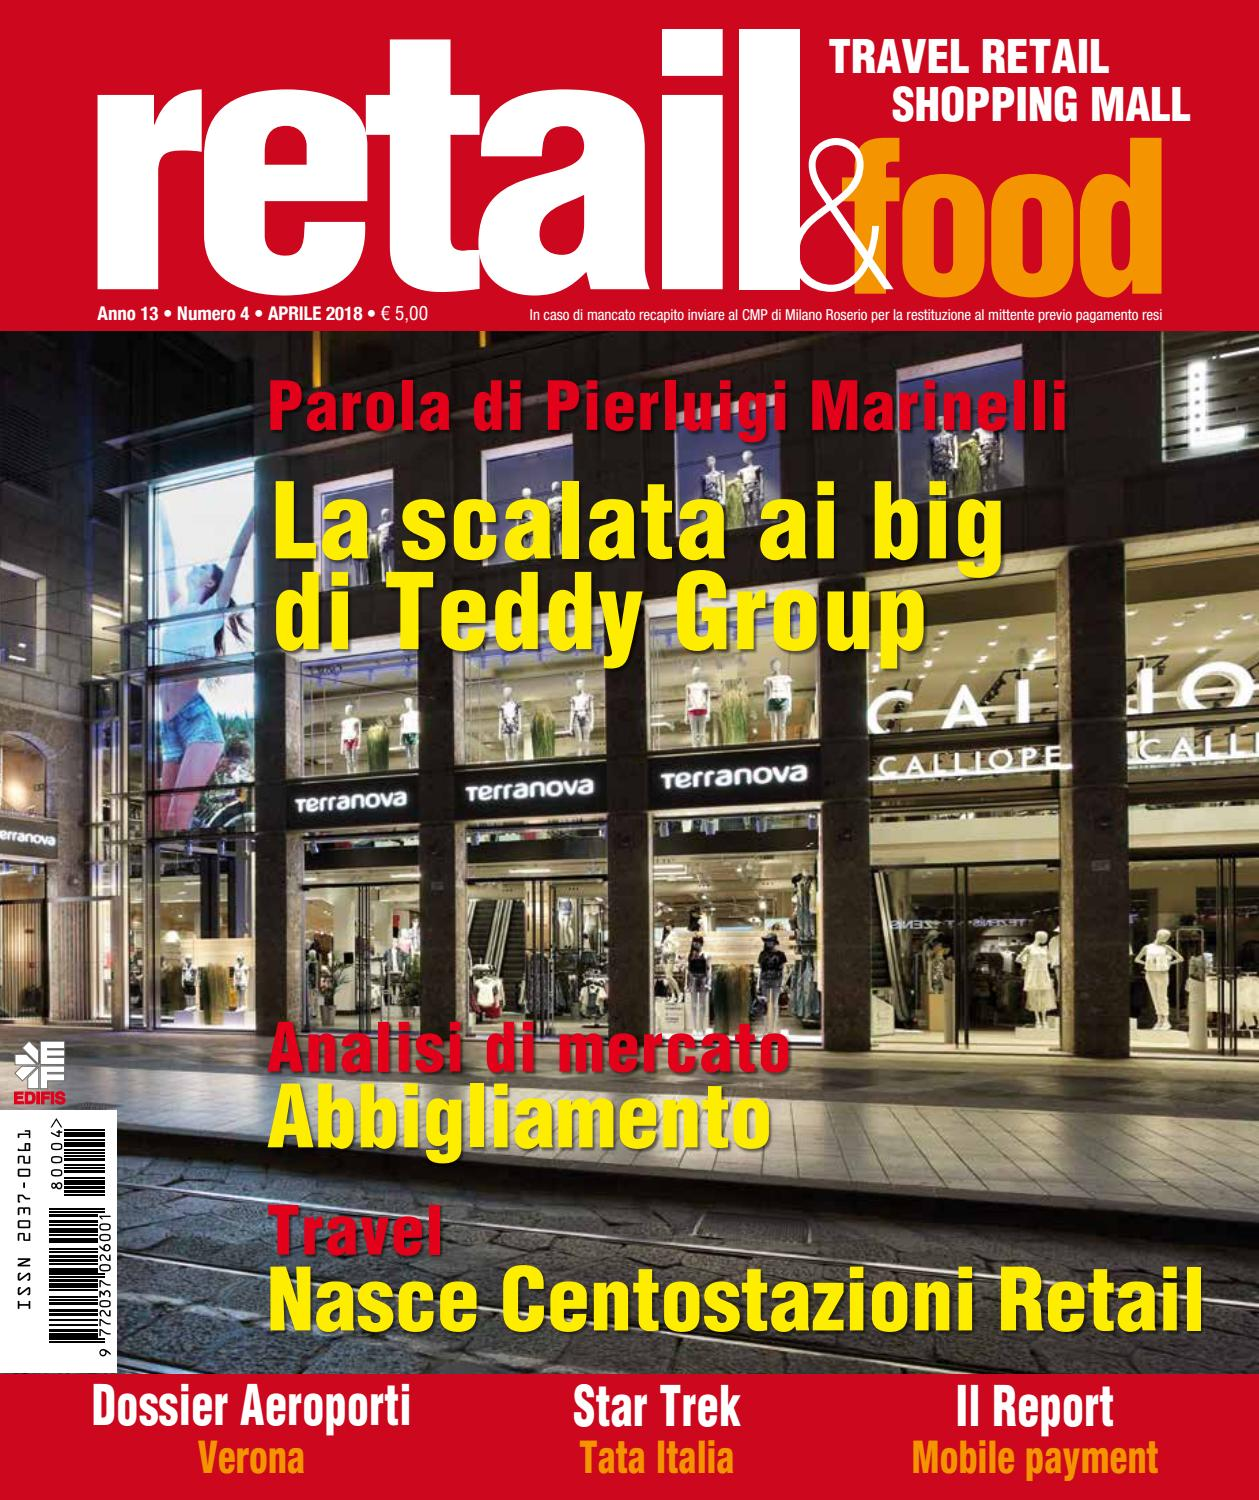 retail fodd 04 2018 by Edifis - issuu b14b59e76a77